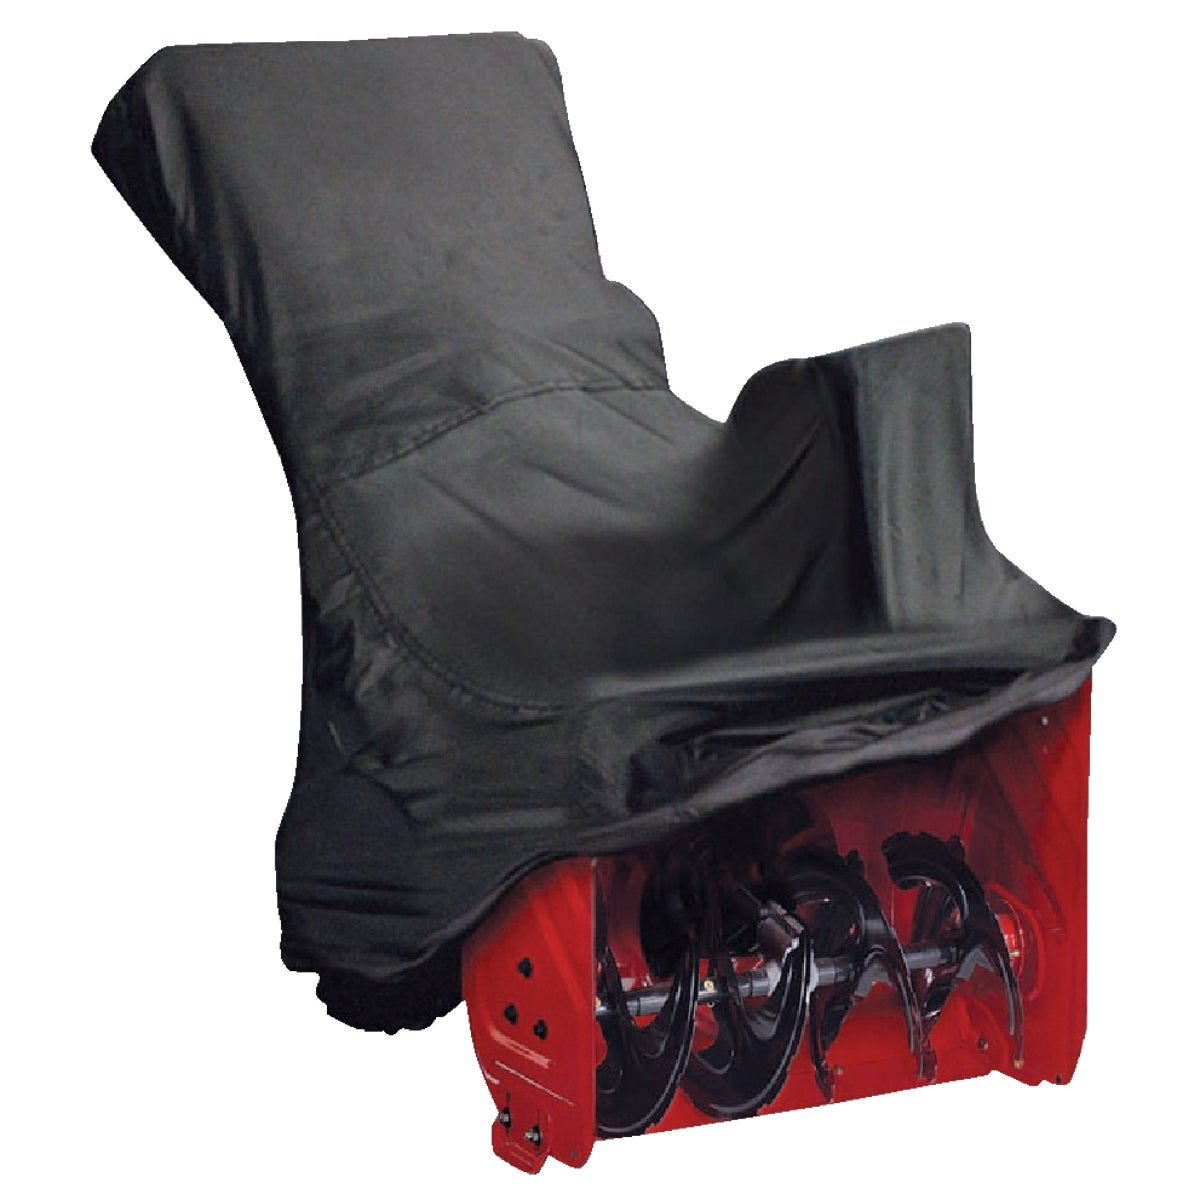 UNIV SNOW THROWER COVER